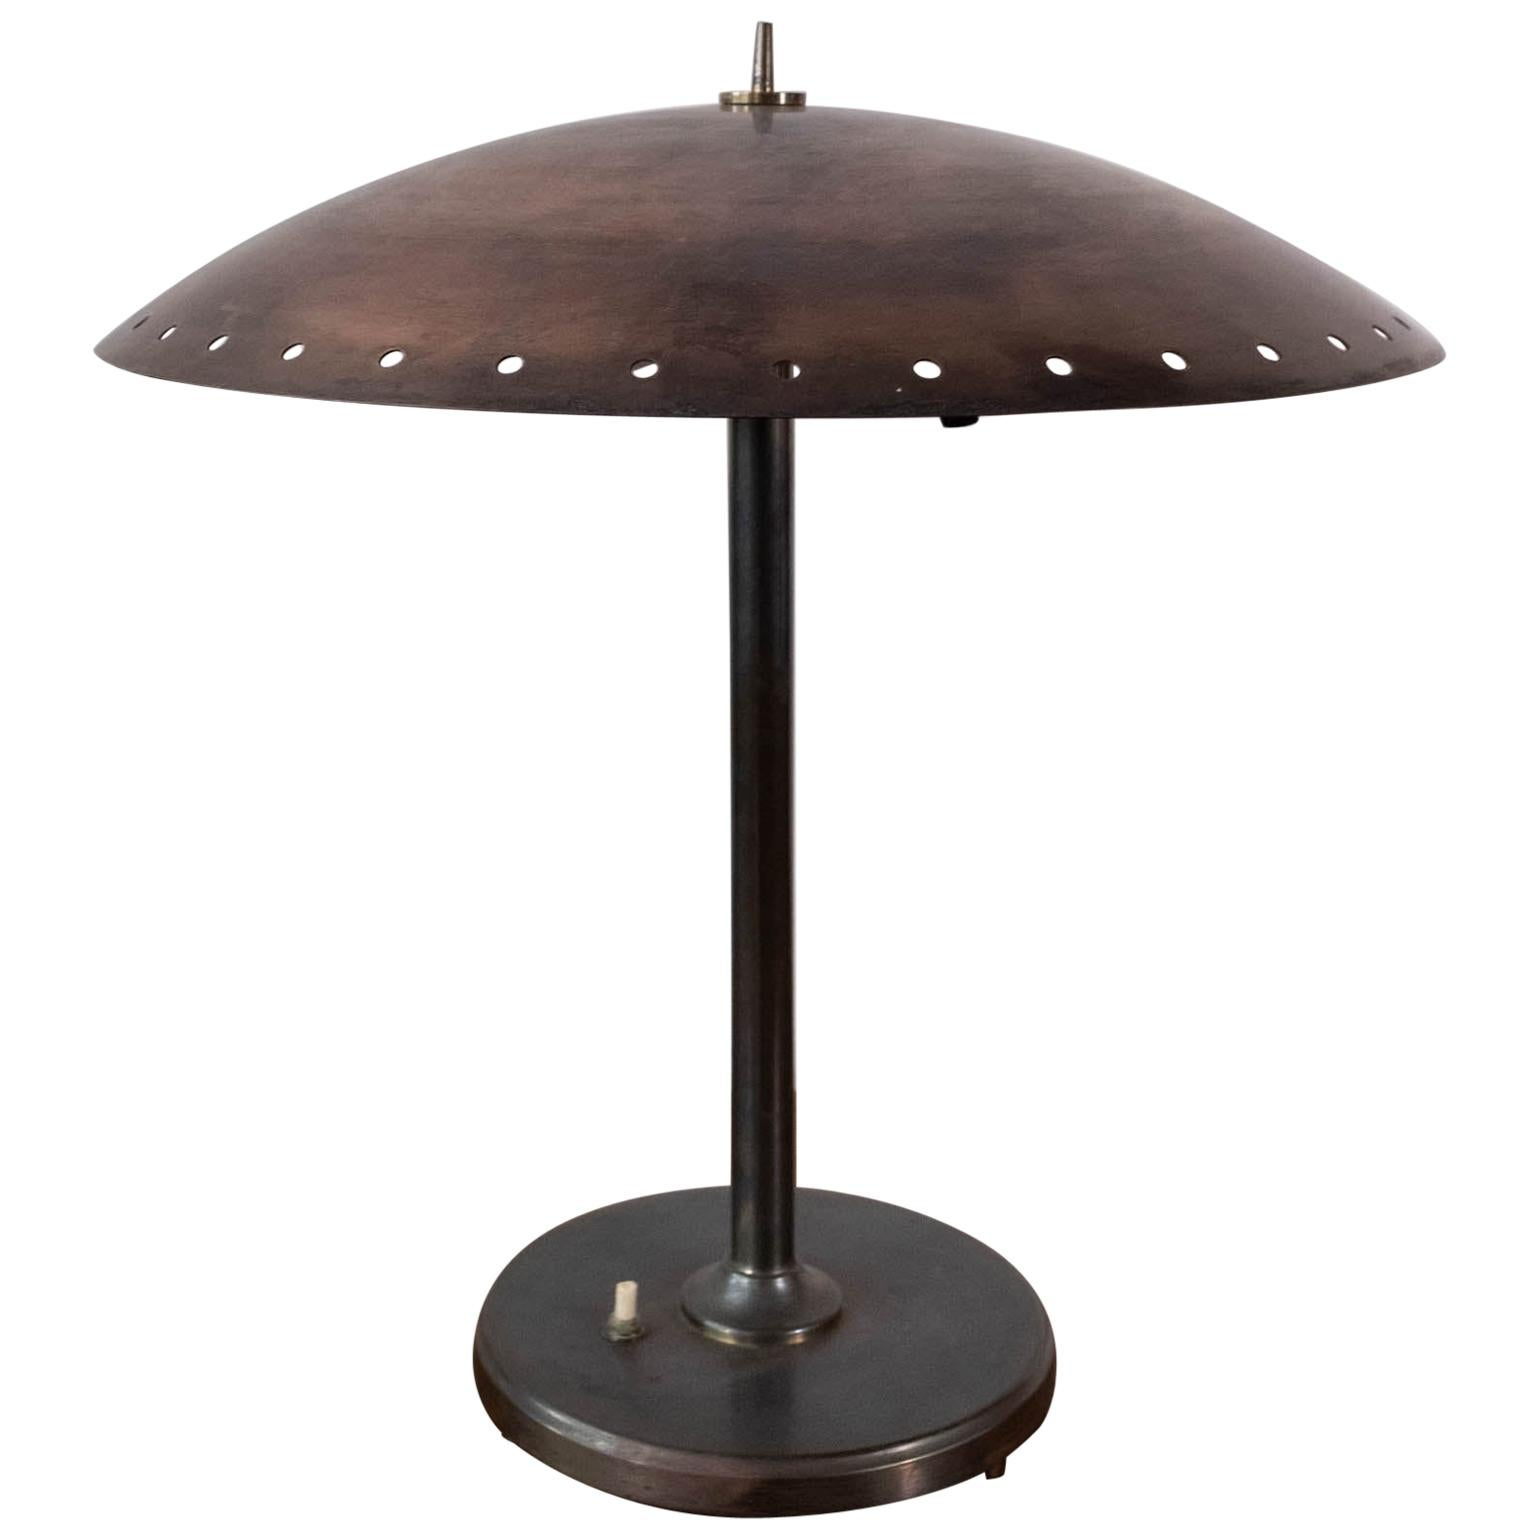 Birger Dahl Sonnico Brass Table Lamp, Norway, 1950s